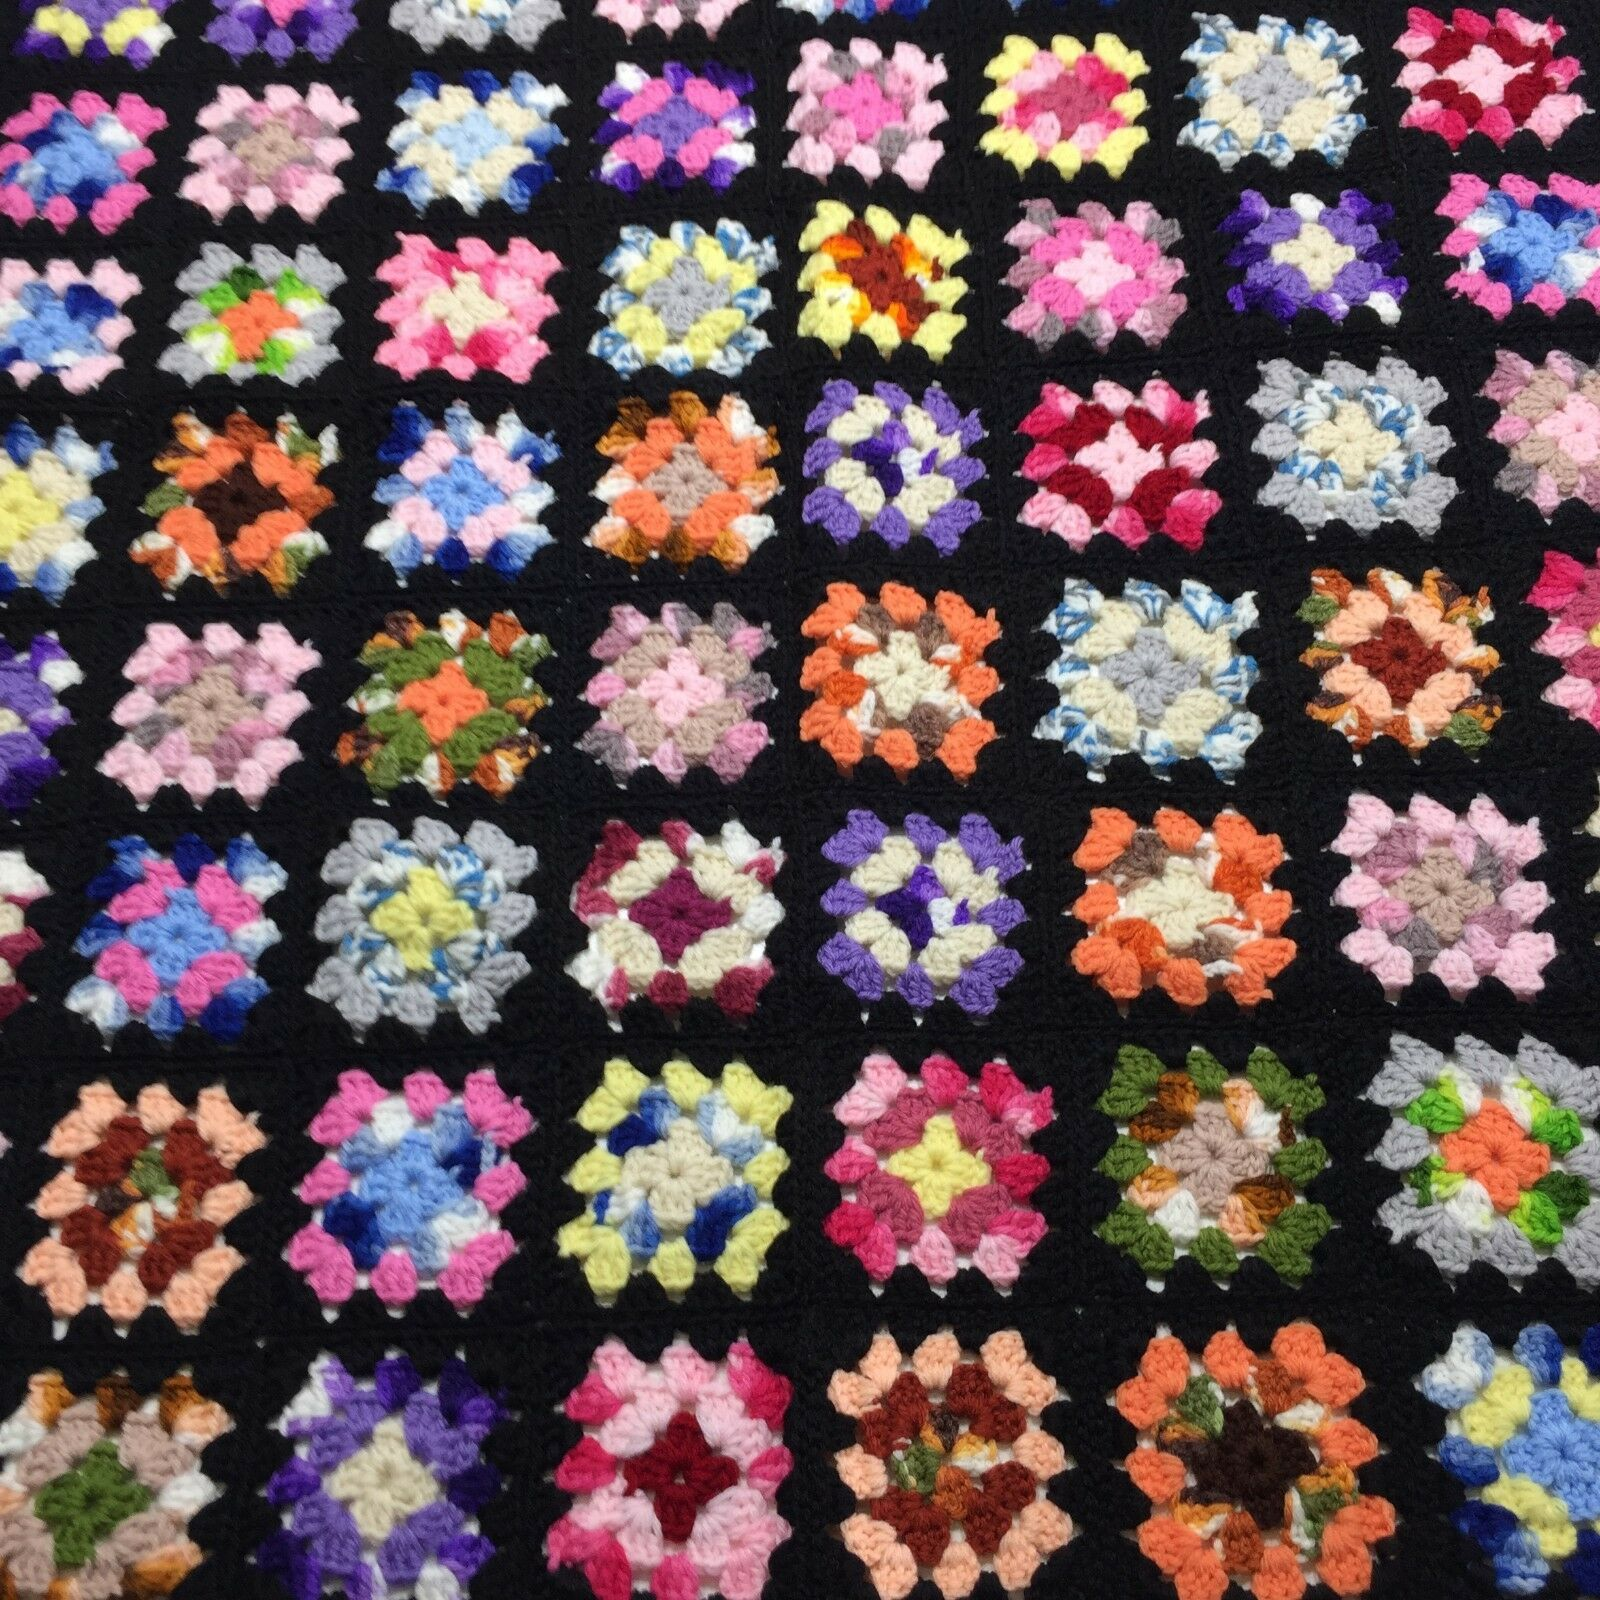 Afghan Crochet Granny Square 34 x44  Blanket Handmade Throw Bed Couch Quilt